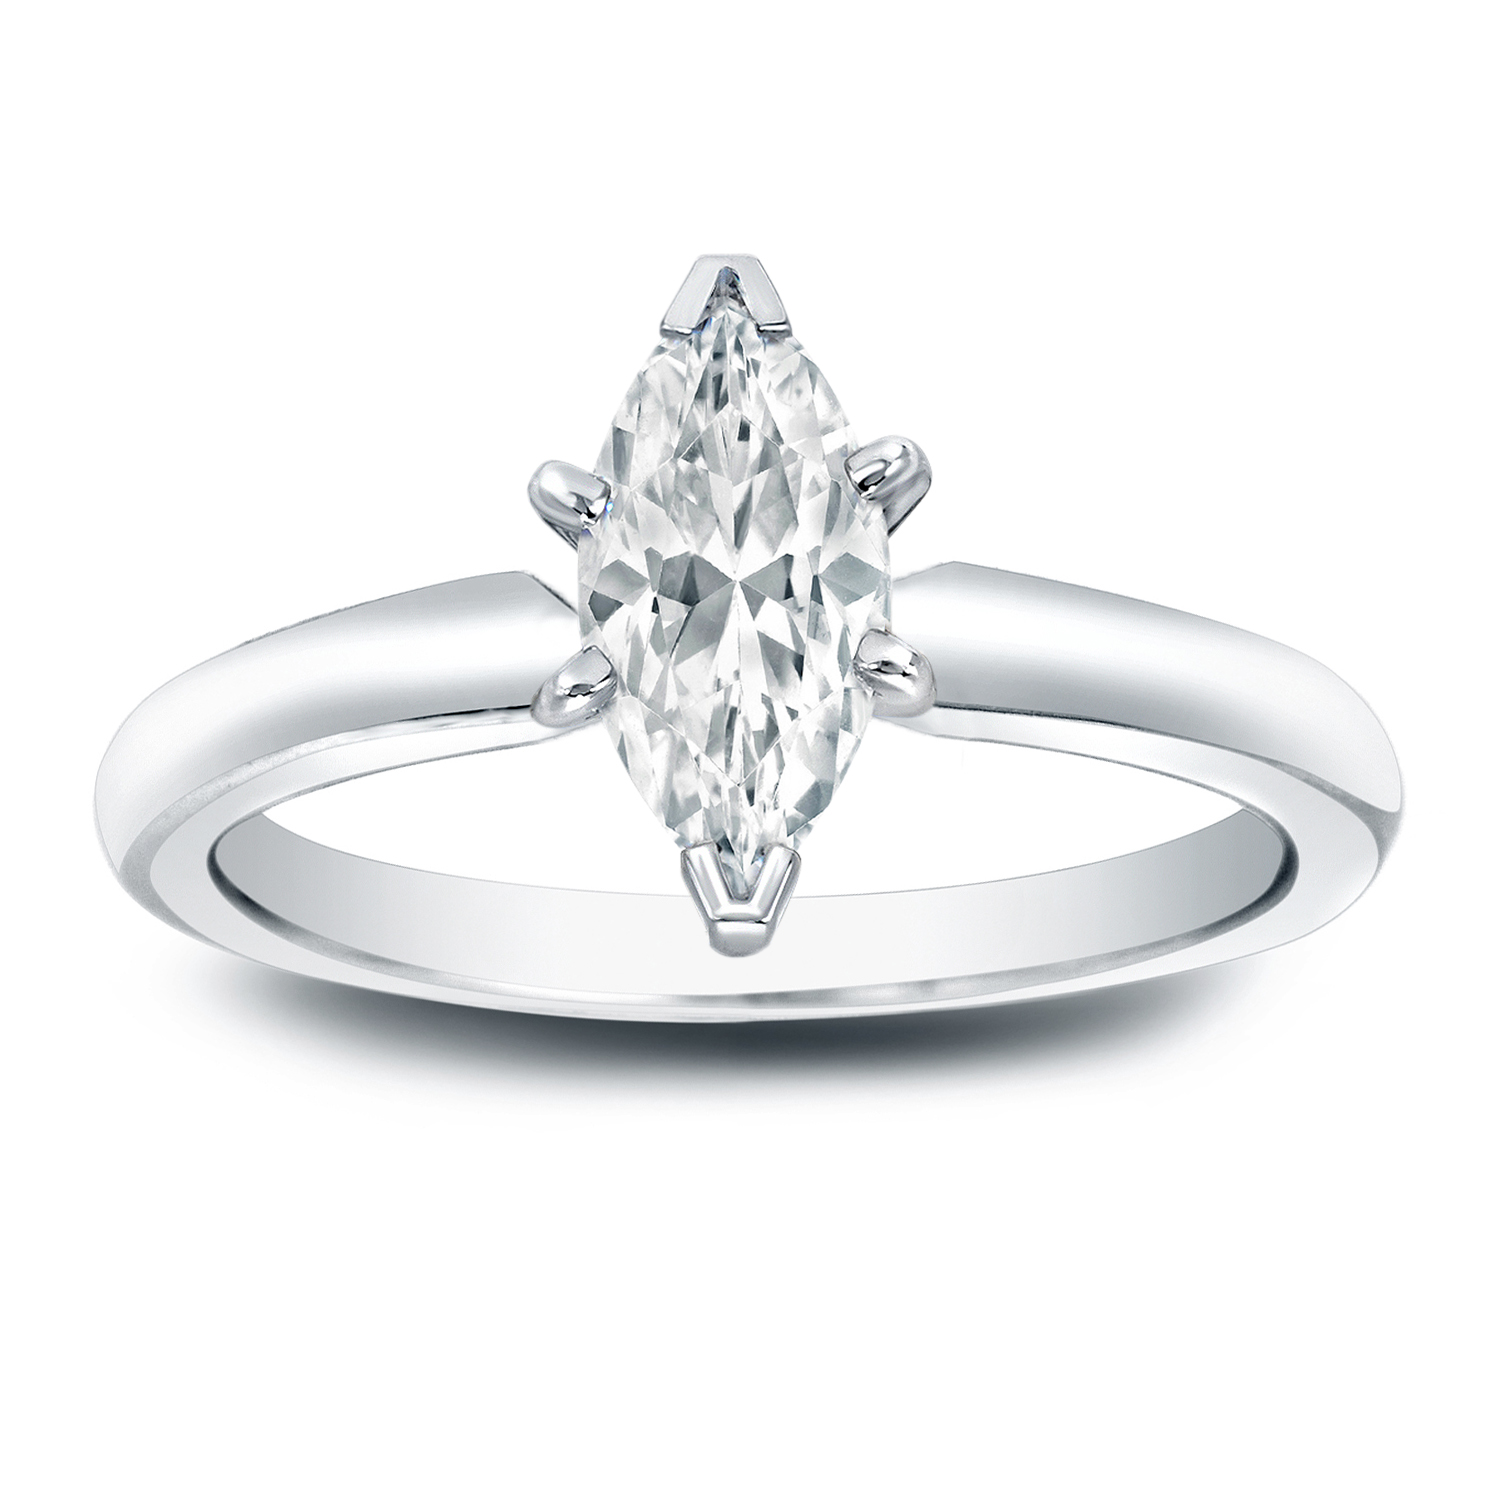 DESTINY Solitaire Diamond Engagement Ring In 14K White Gold